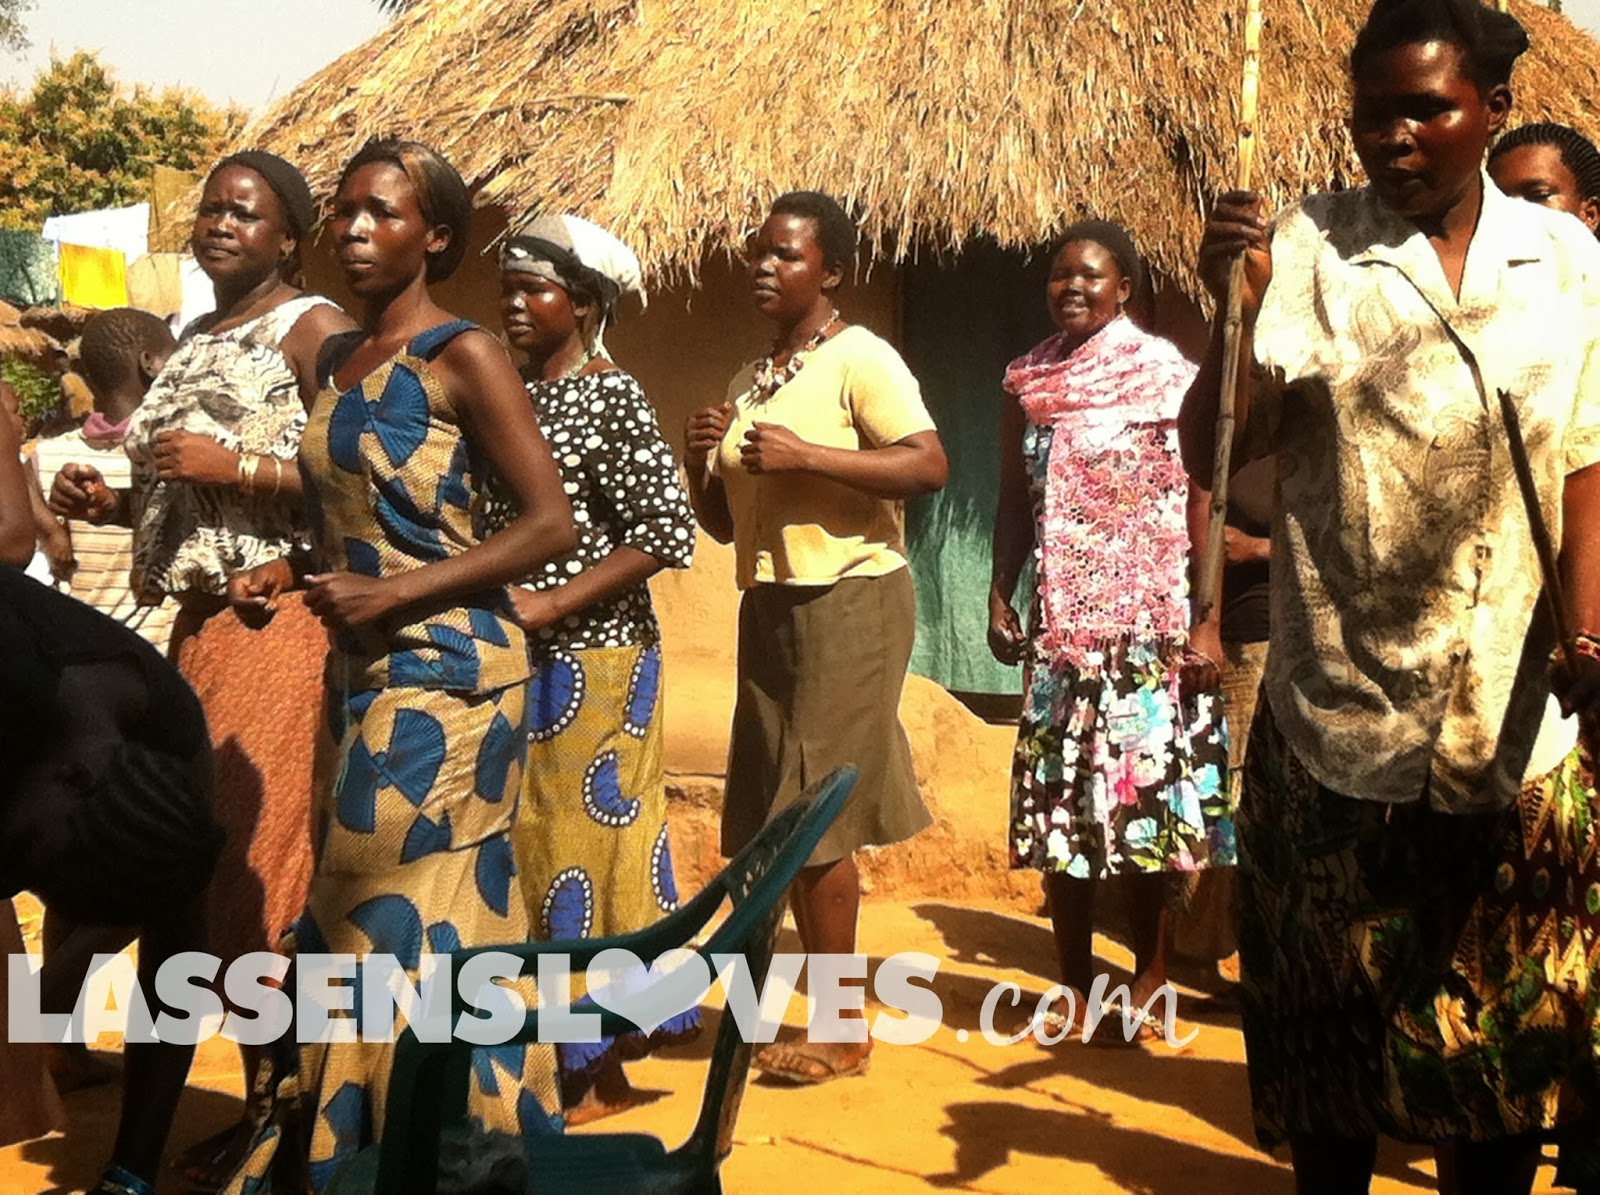 lassensloves.com, Lassen's, Beads+of+Hope, Women+of+Peace, Gulu+Uganda